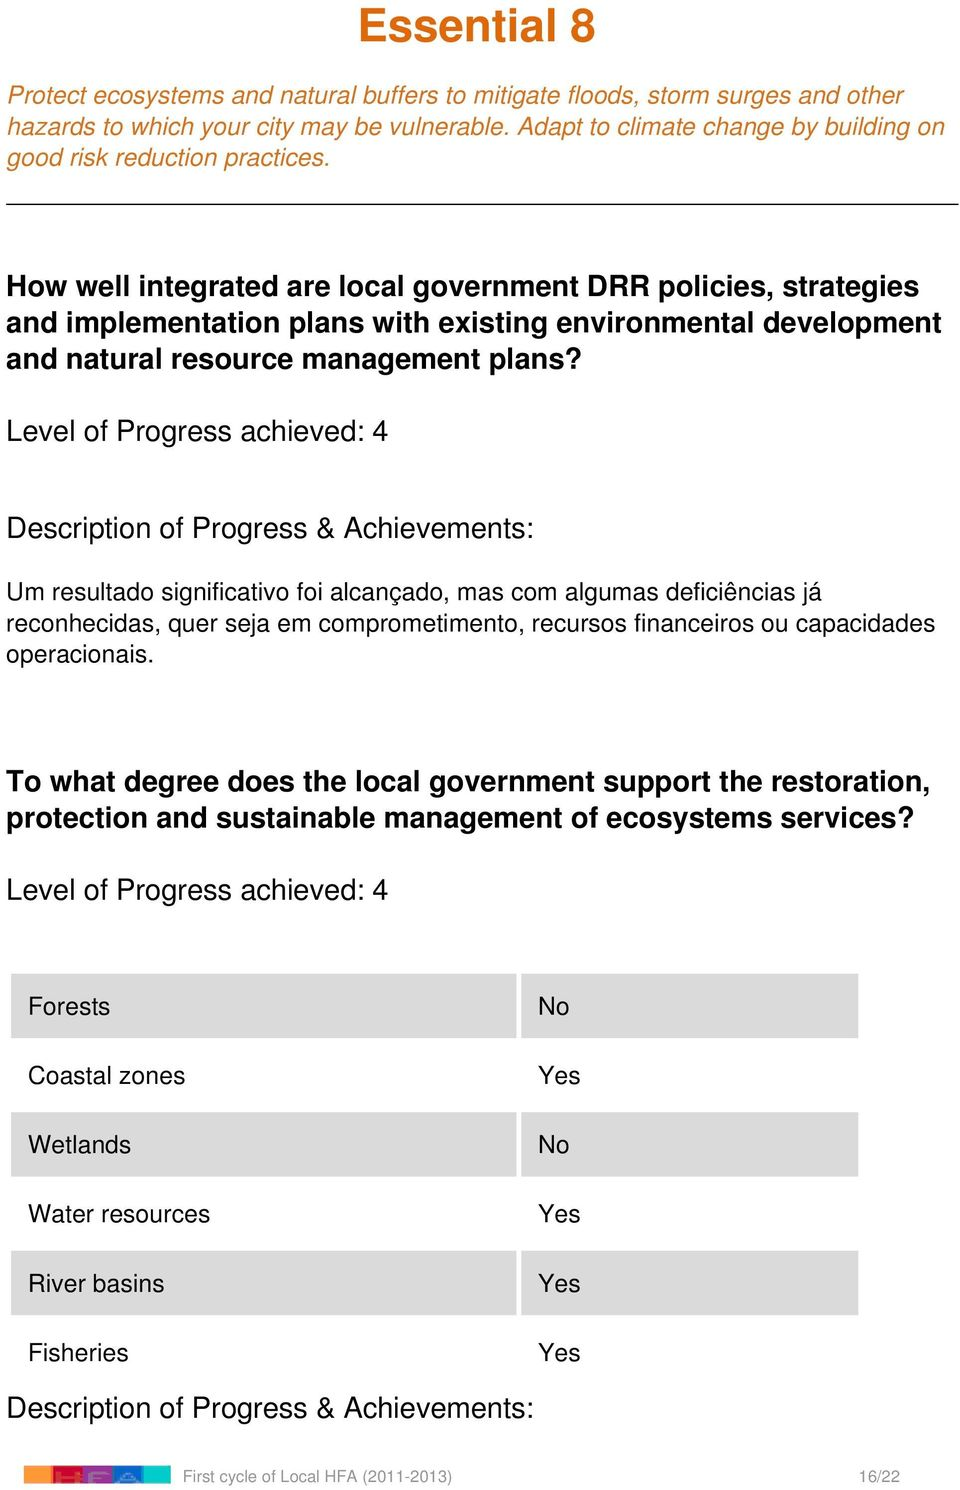 How well integrated are local government DRR policies, strategies and implementation plans with existing environmental development and natural resource